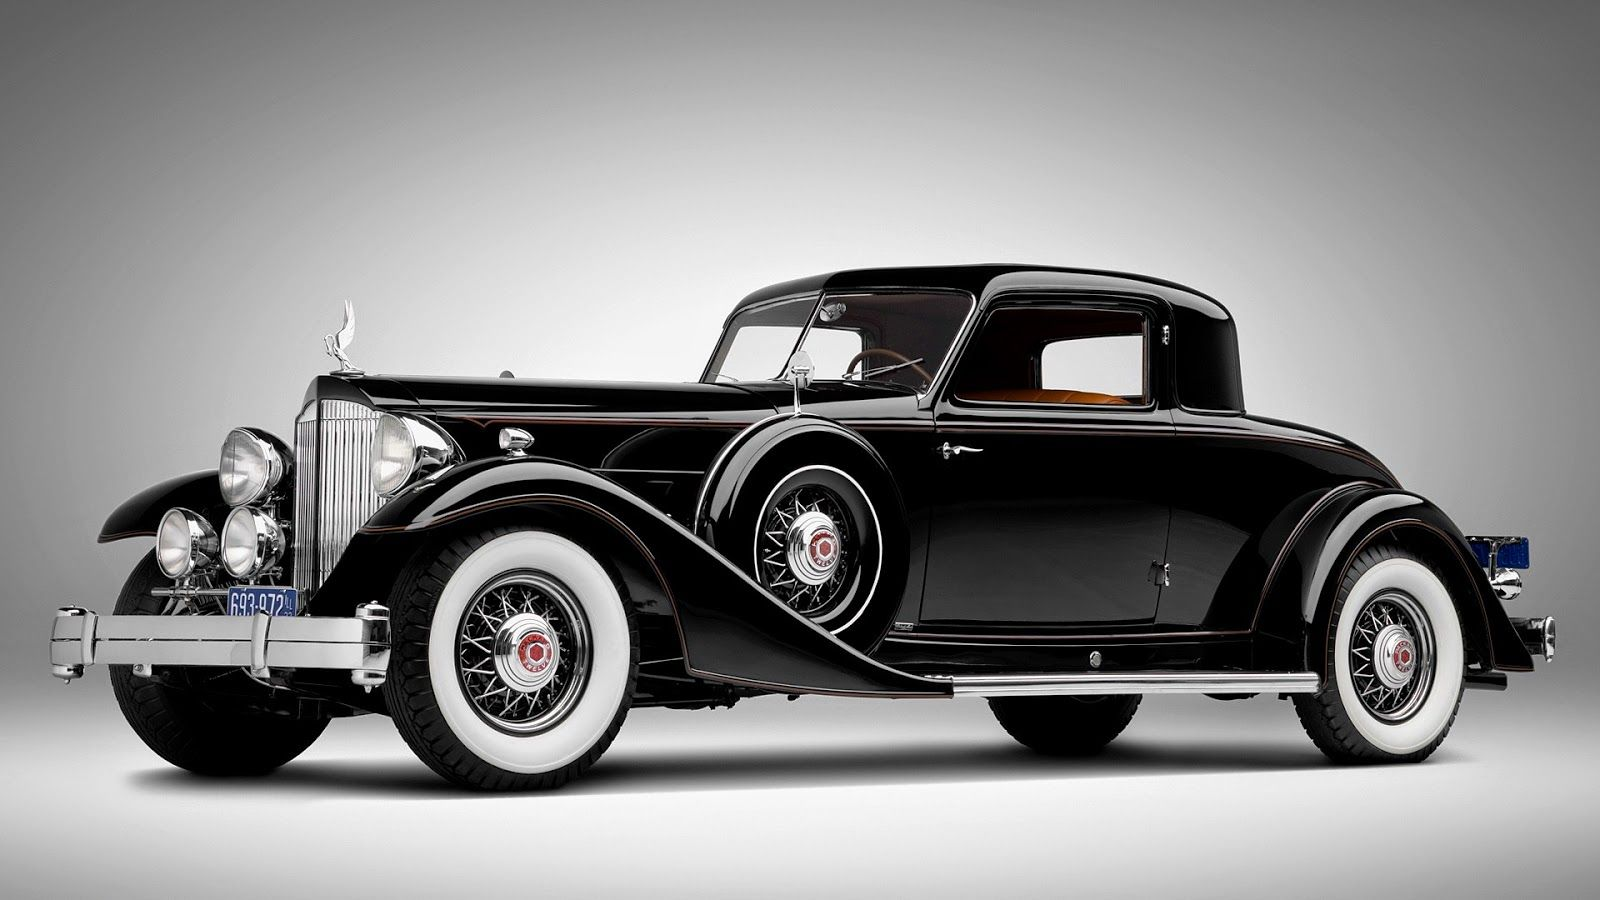 Classic Cars With The Best Design - Moi Tres Jolie | Autos ...